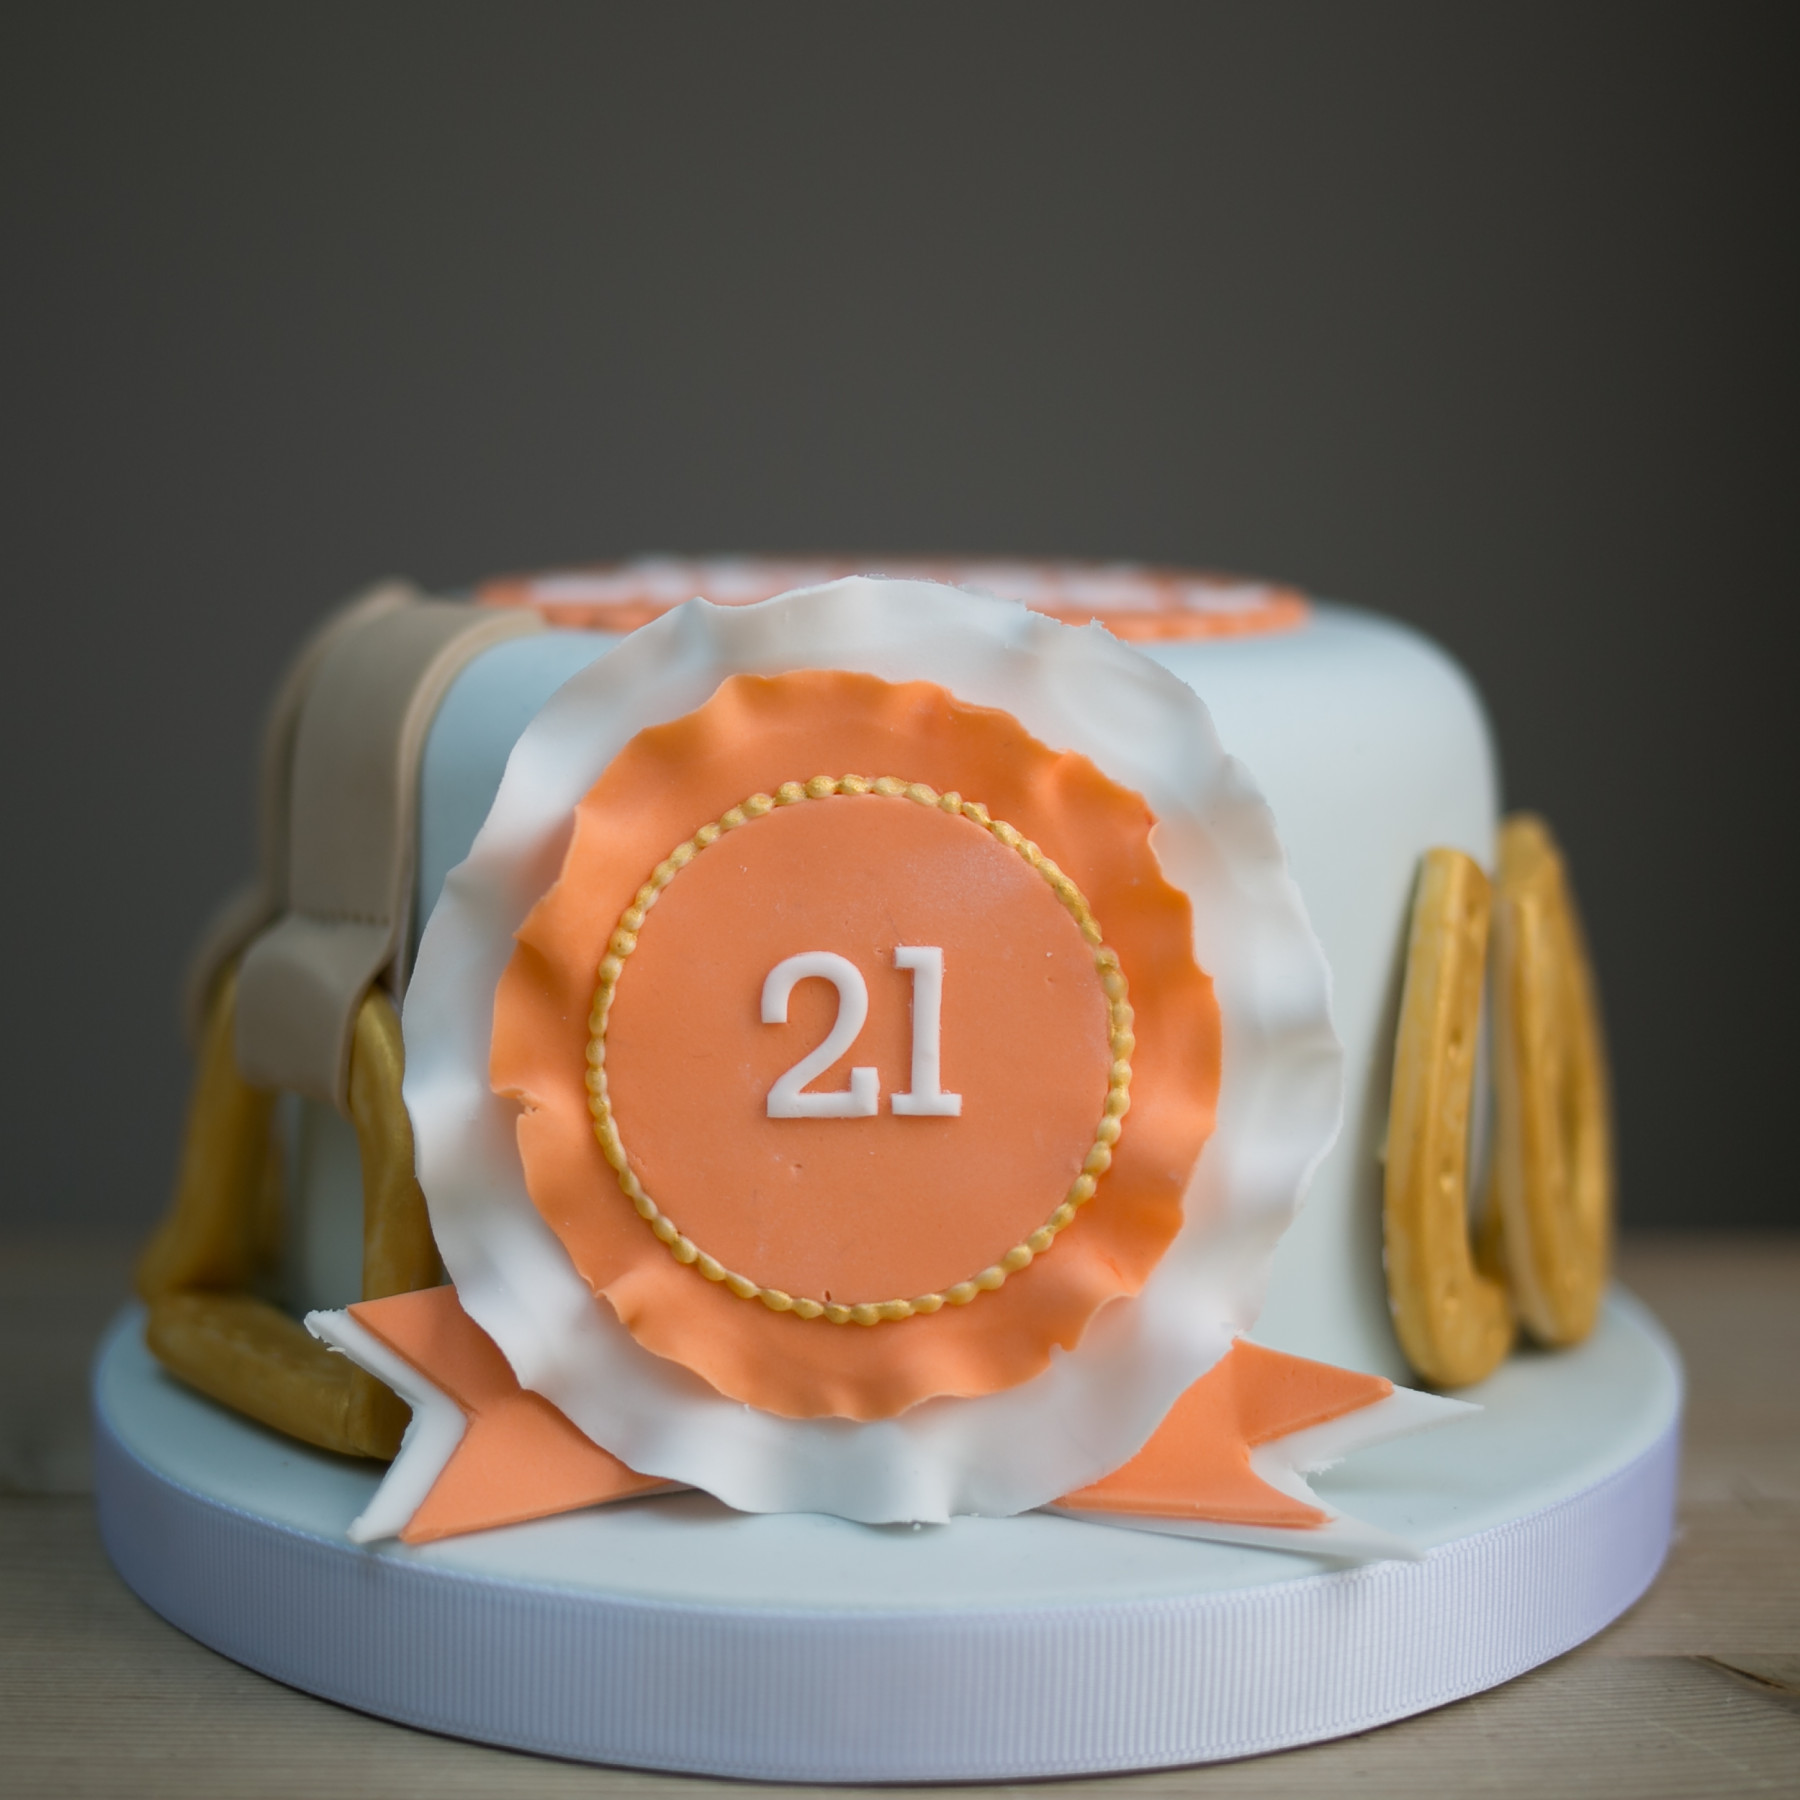 Pin Horse Riding Olympics Facts Cake On Pinterest